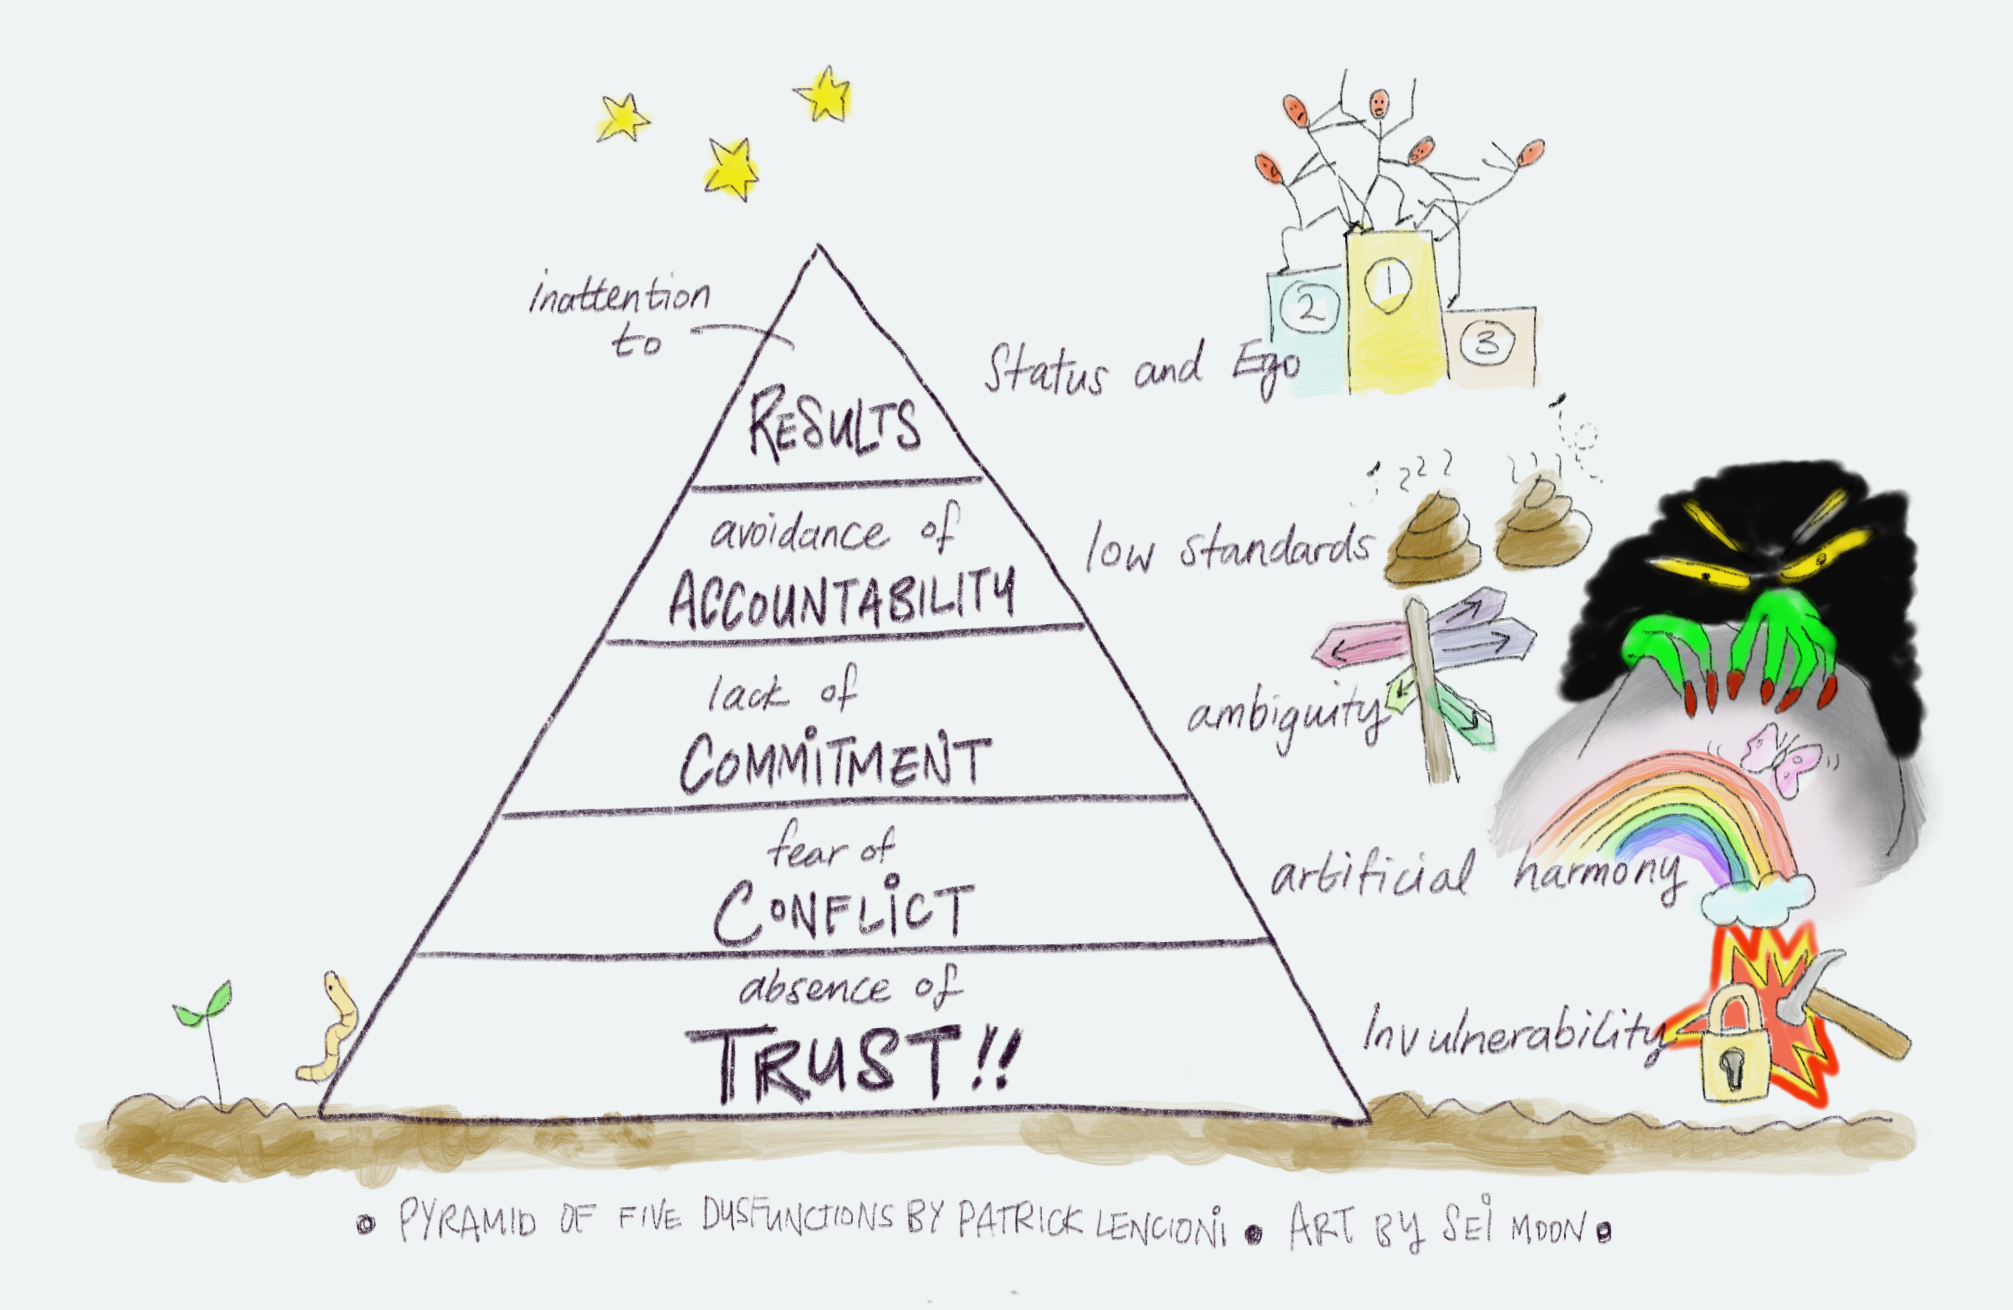 Pyramid of the 'Five Dysfunctions of a Team' with illustrations